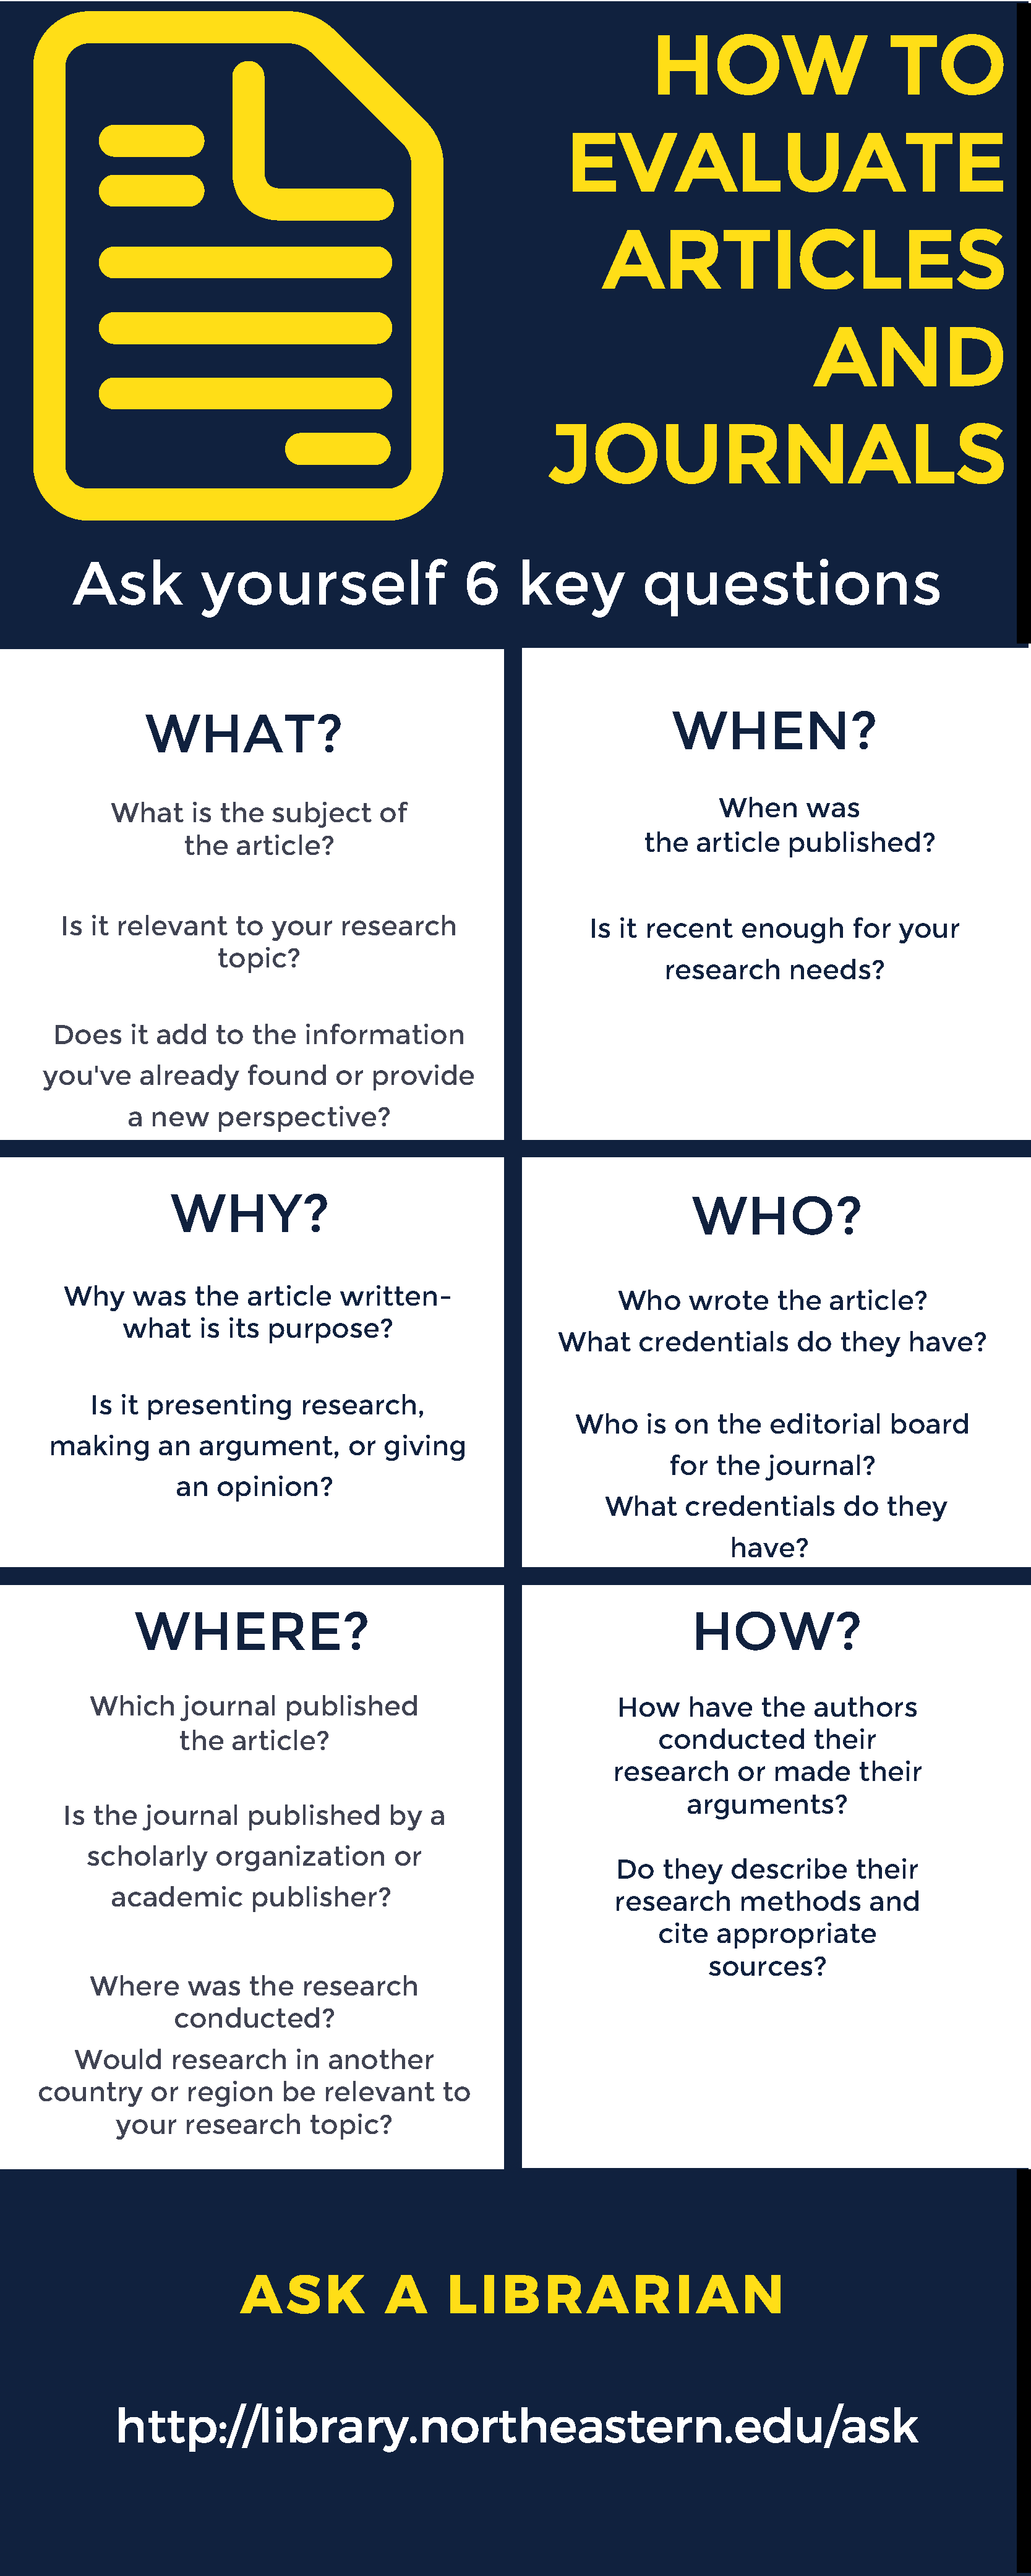 How to evaluate articles and journals